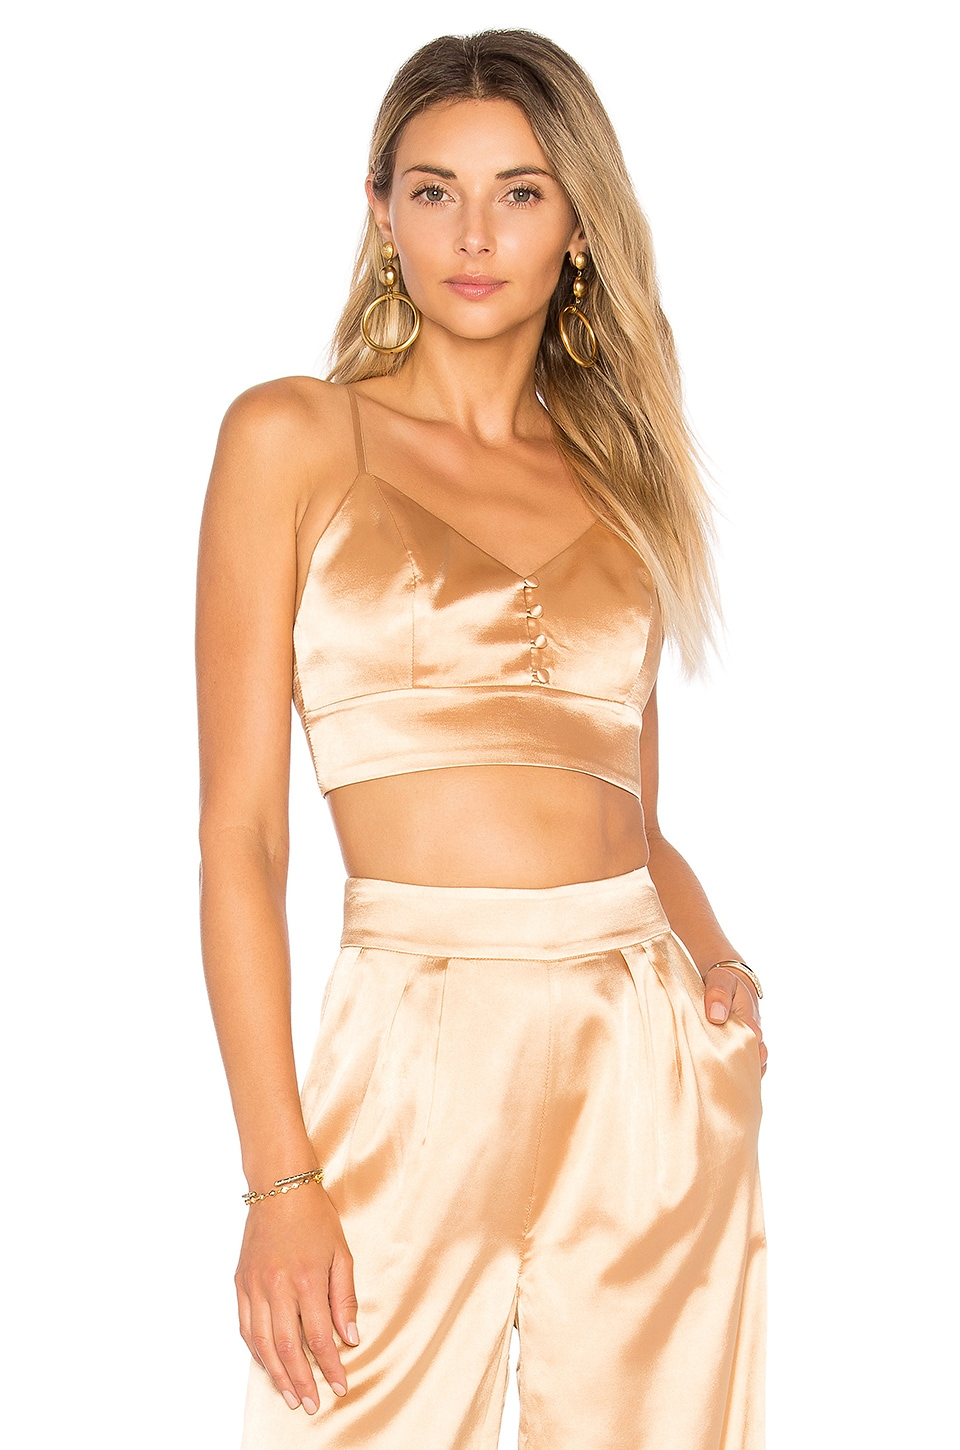 House of Harlow 1960 x REVOLVE Bailey Bralette in Champagne